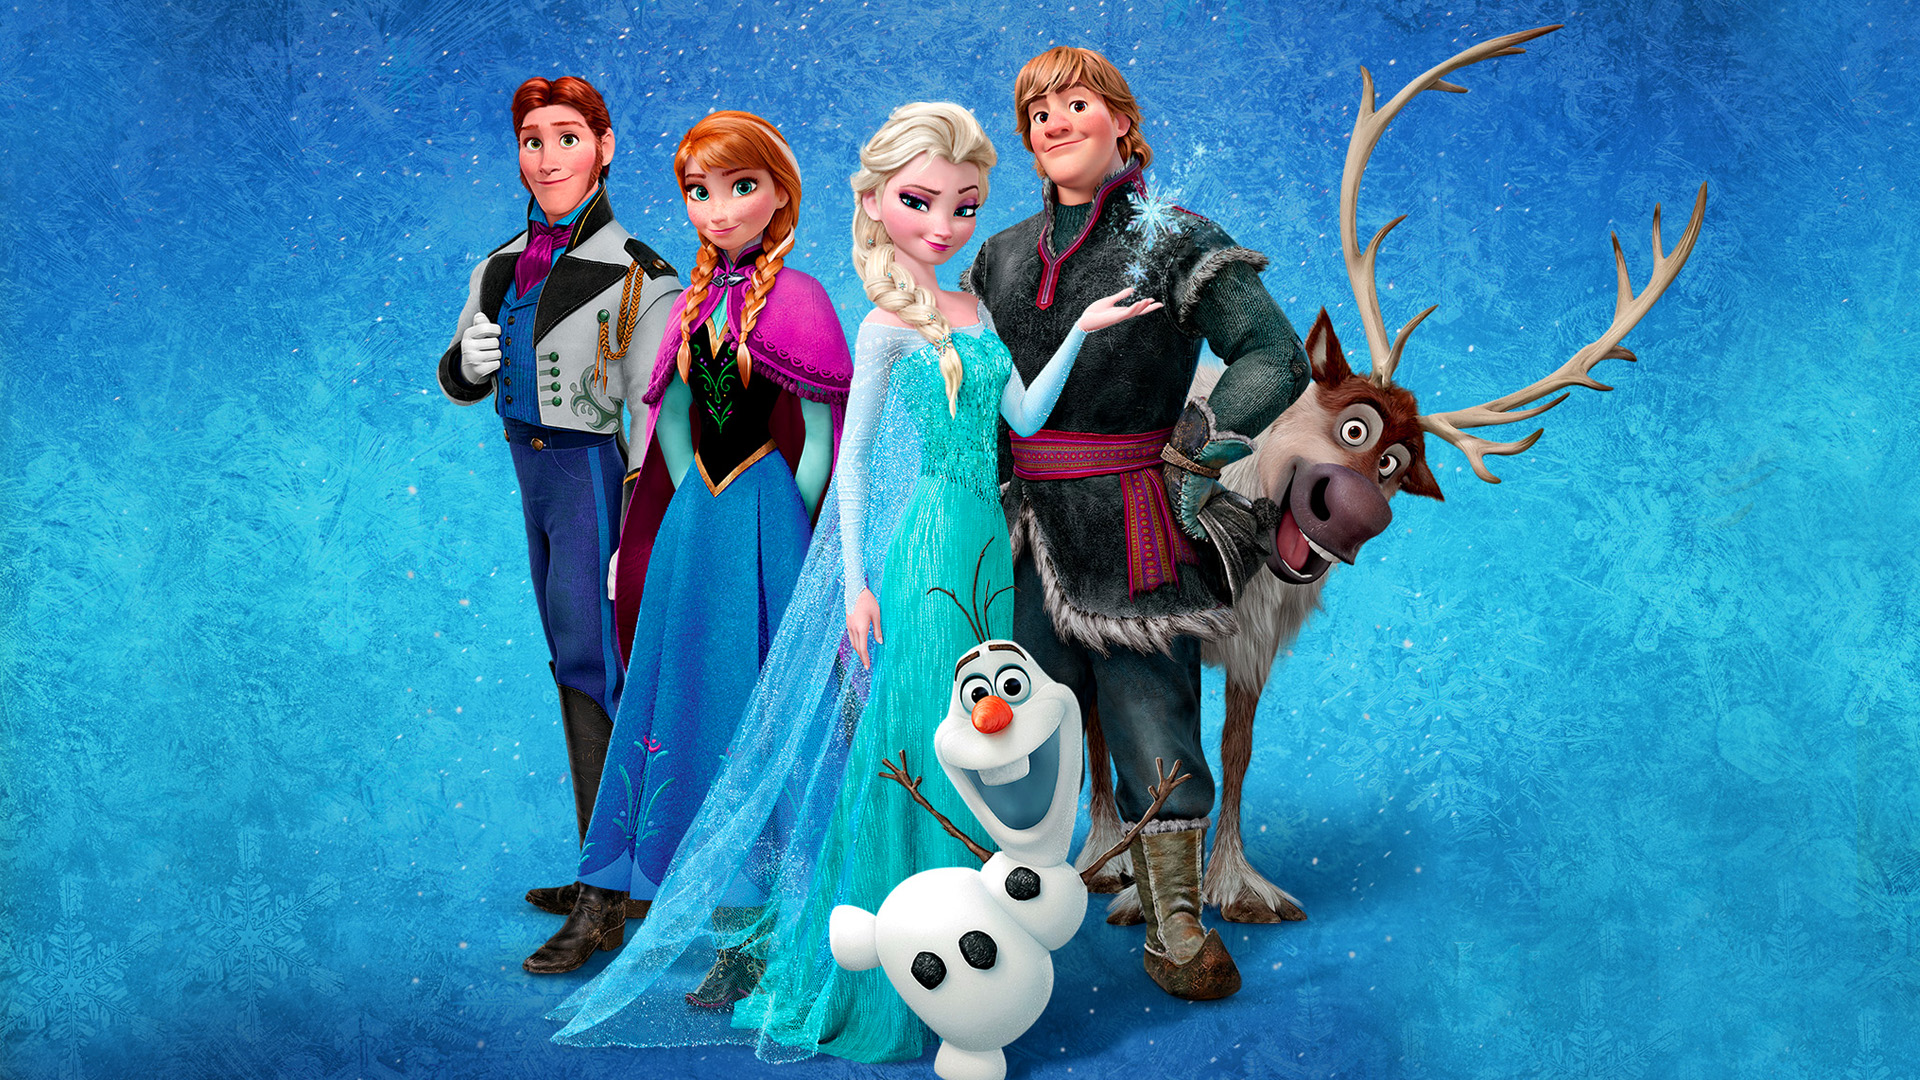 Hd frozen wallpaper wallpapersafari - Frozen cartoon wallpaper ...